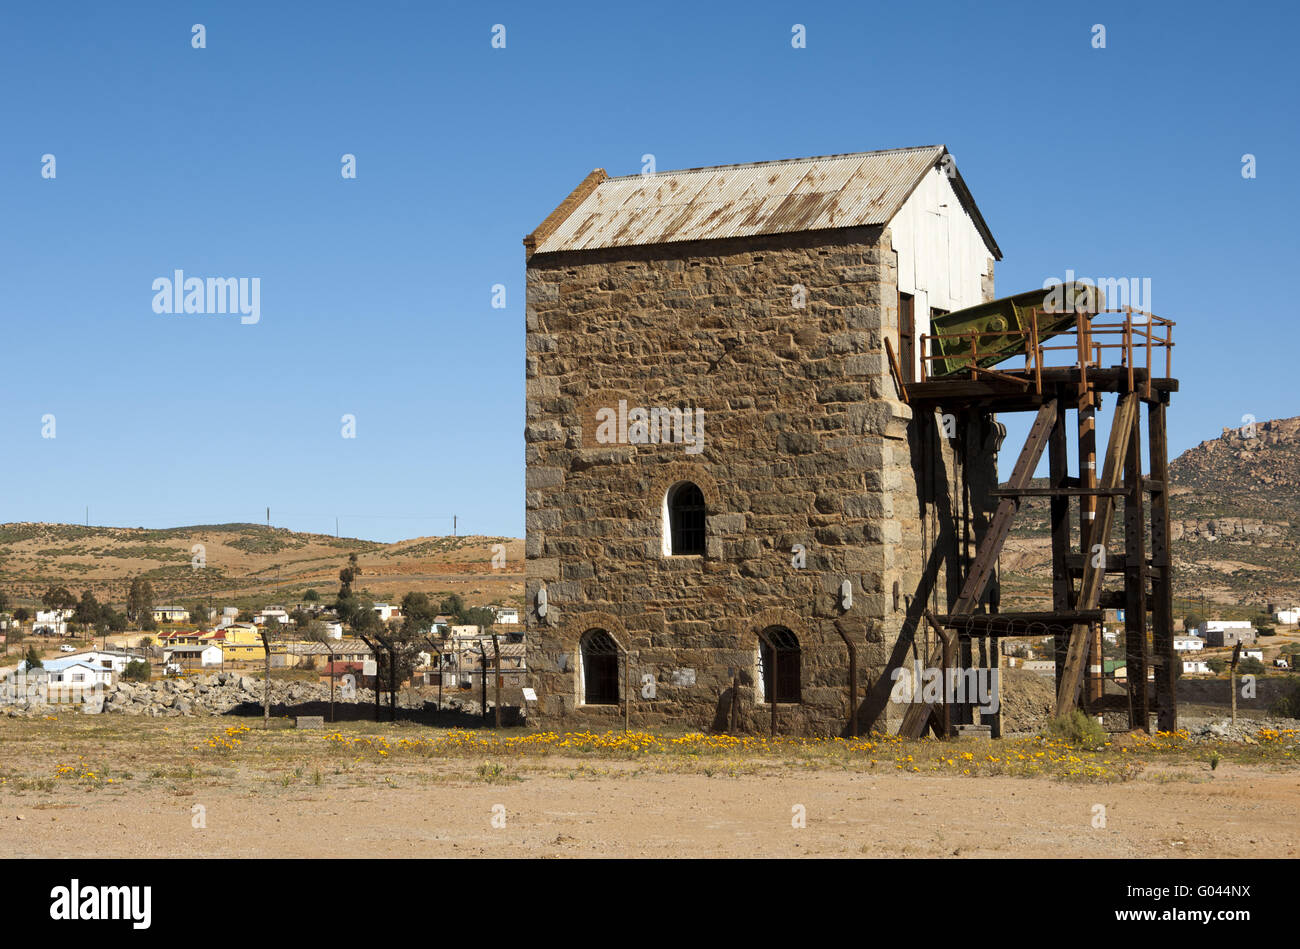 Cornish Engine Pump House, Okiep, South Africa Stock Photo